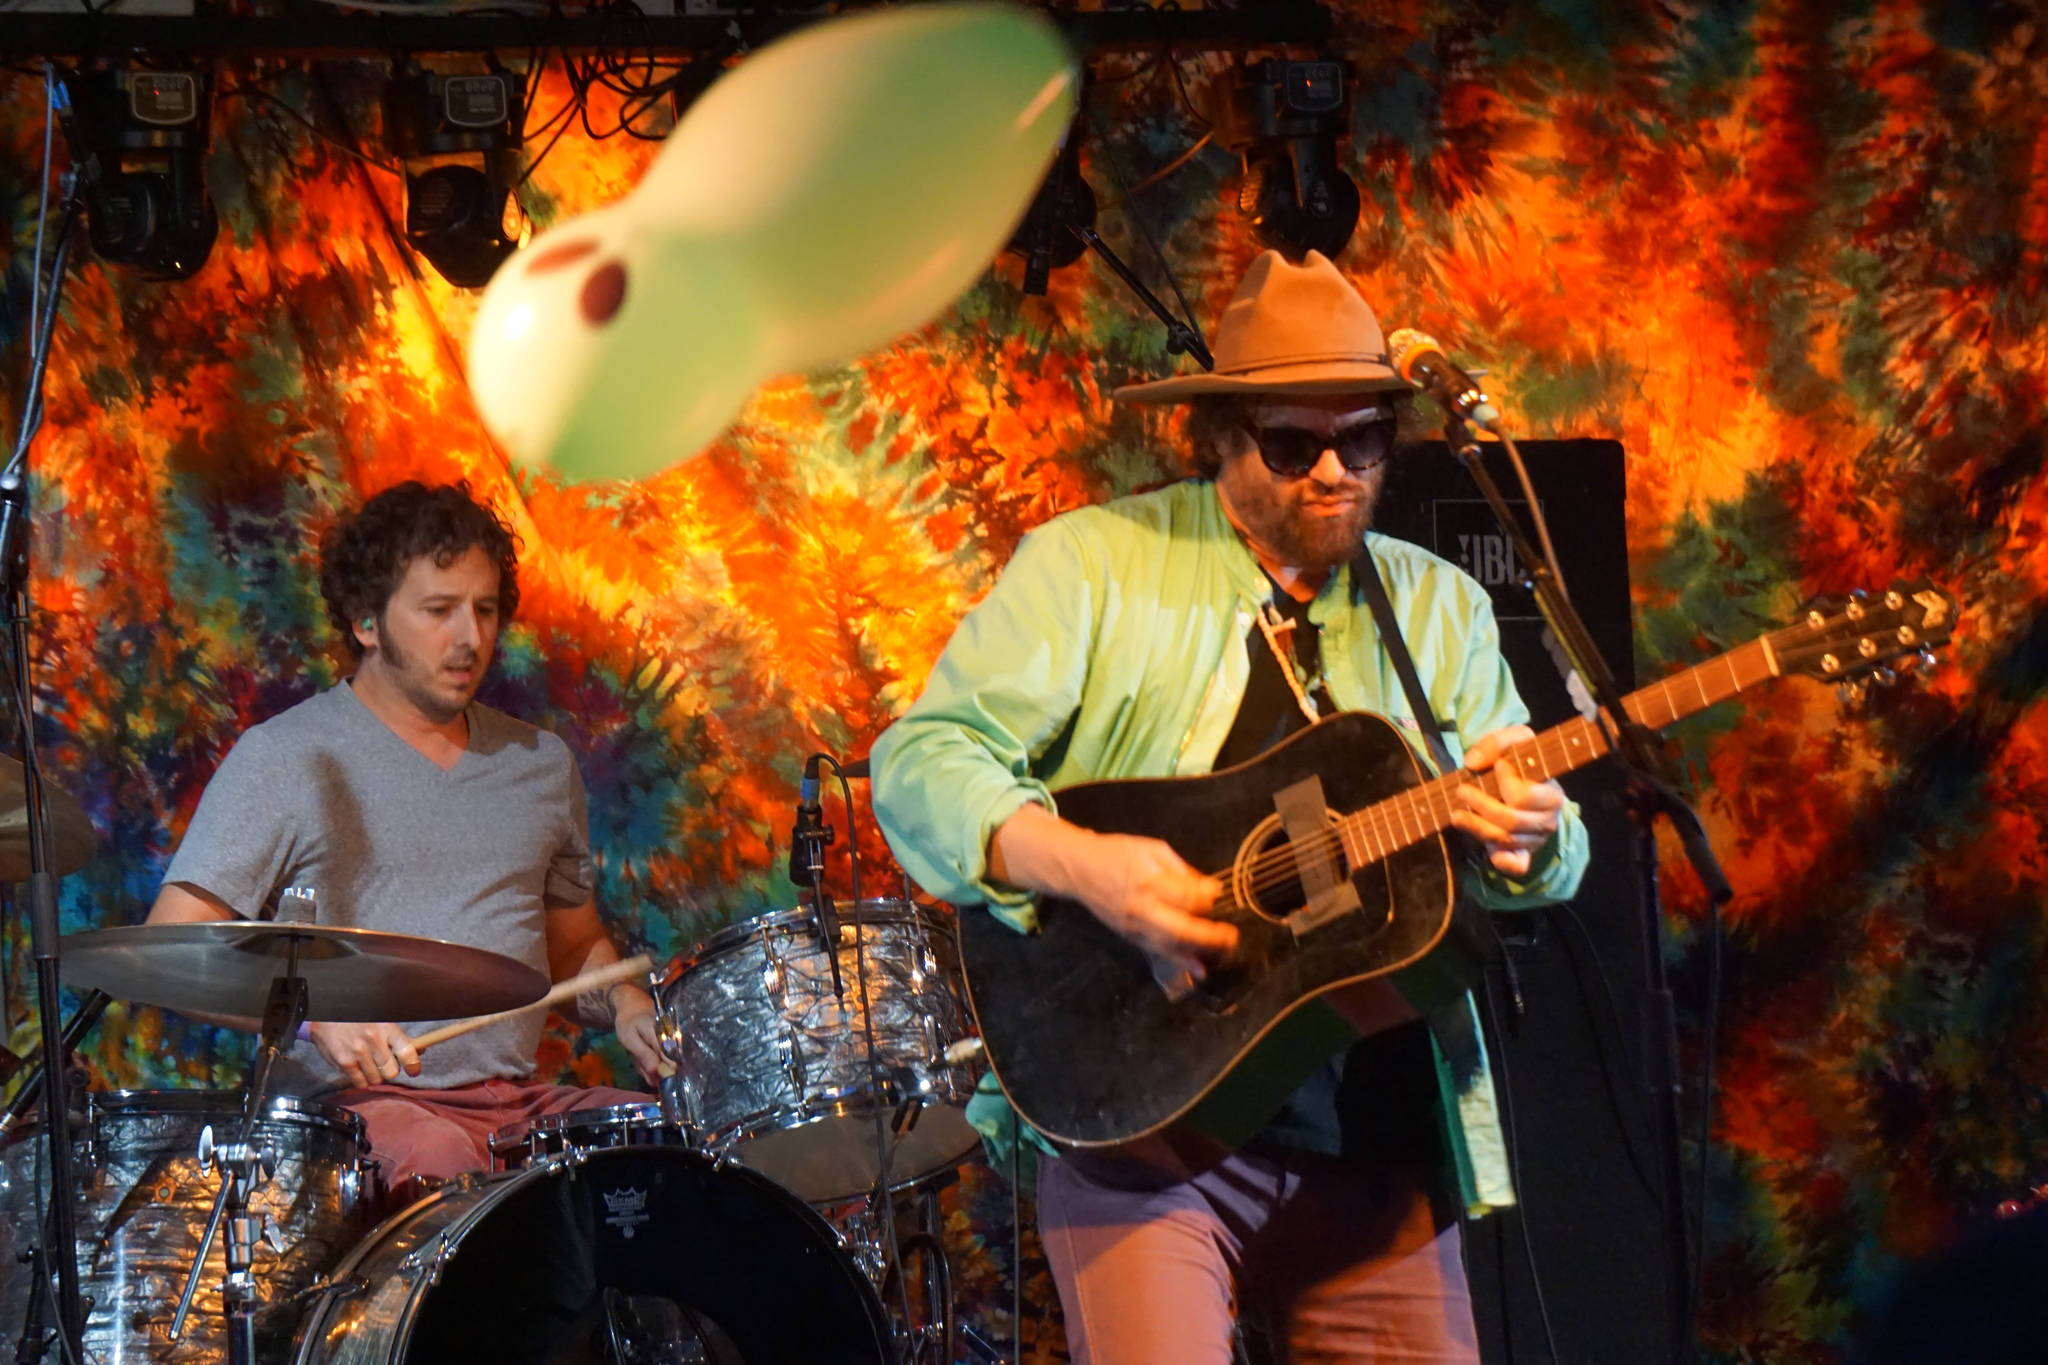 Zil Fessler, left, and Michael Glabicki of Rusted Root perform on Saturday night, Aug. 5, 2017, at Salmonfest, Ninilchik, Alaska. A balloon bounces over the crowd. (Photo by Michael Armstrong, Homer News)